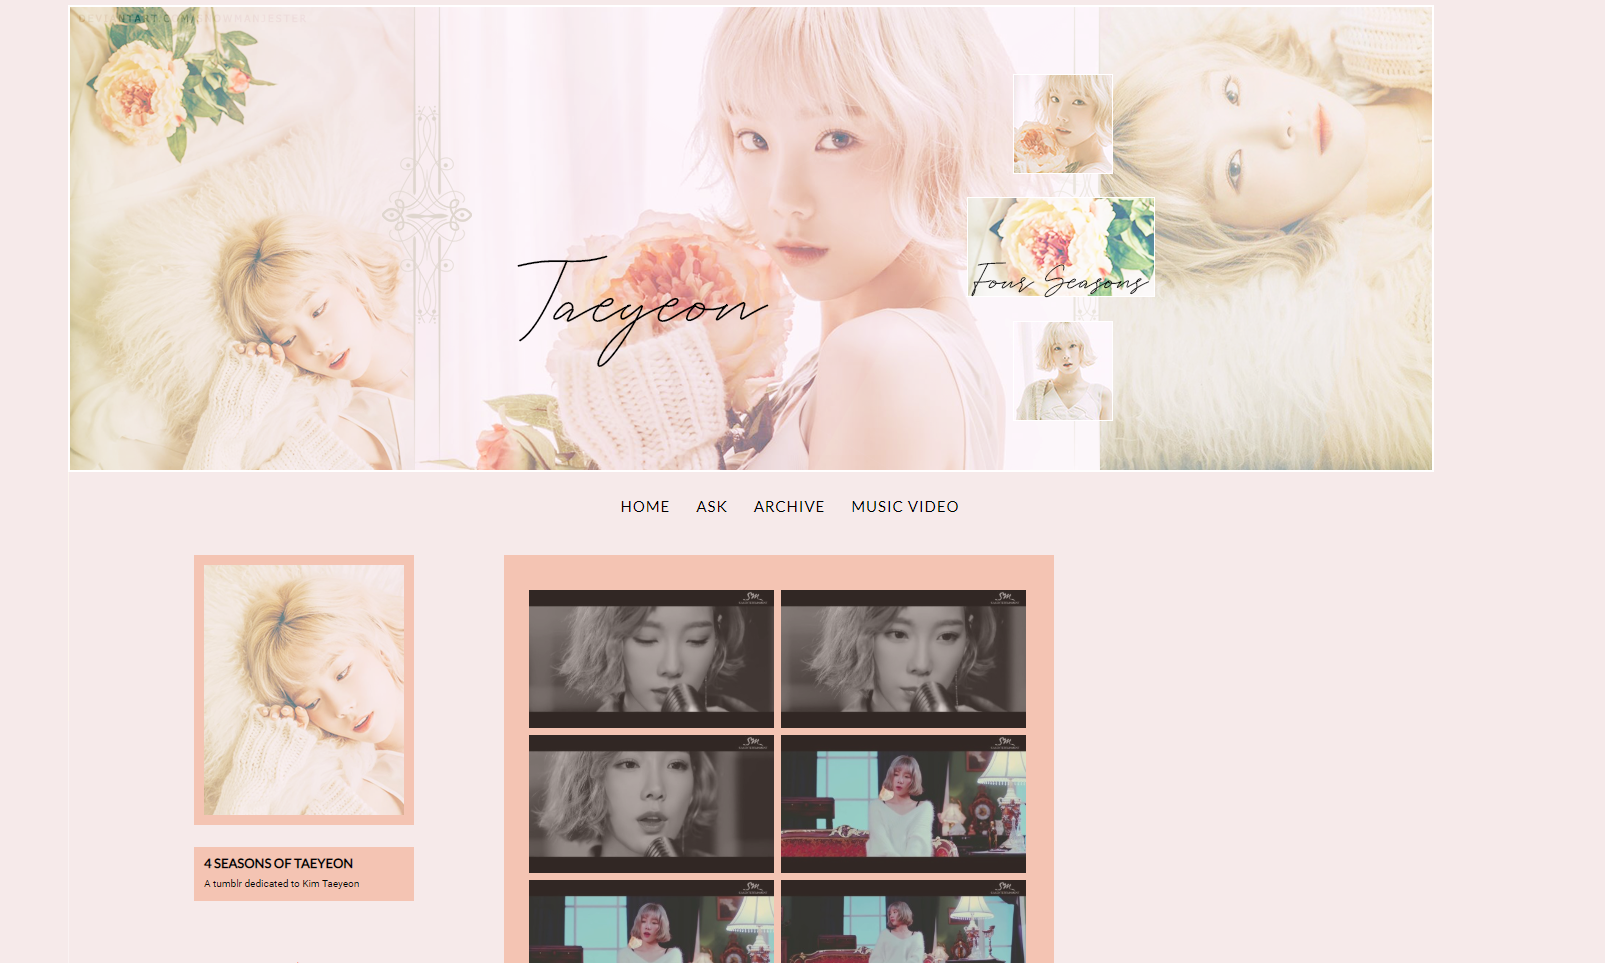 [TUMBLR LAYOUT] Taeyeon 4 Seasons